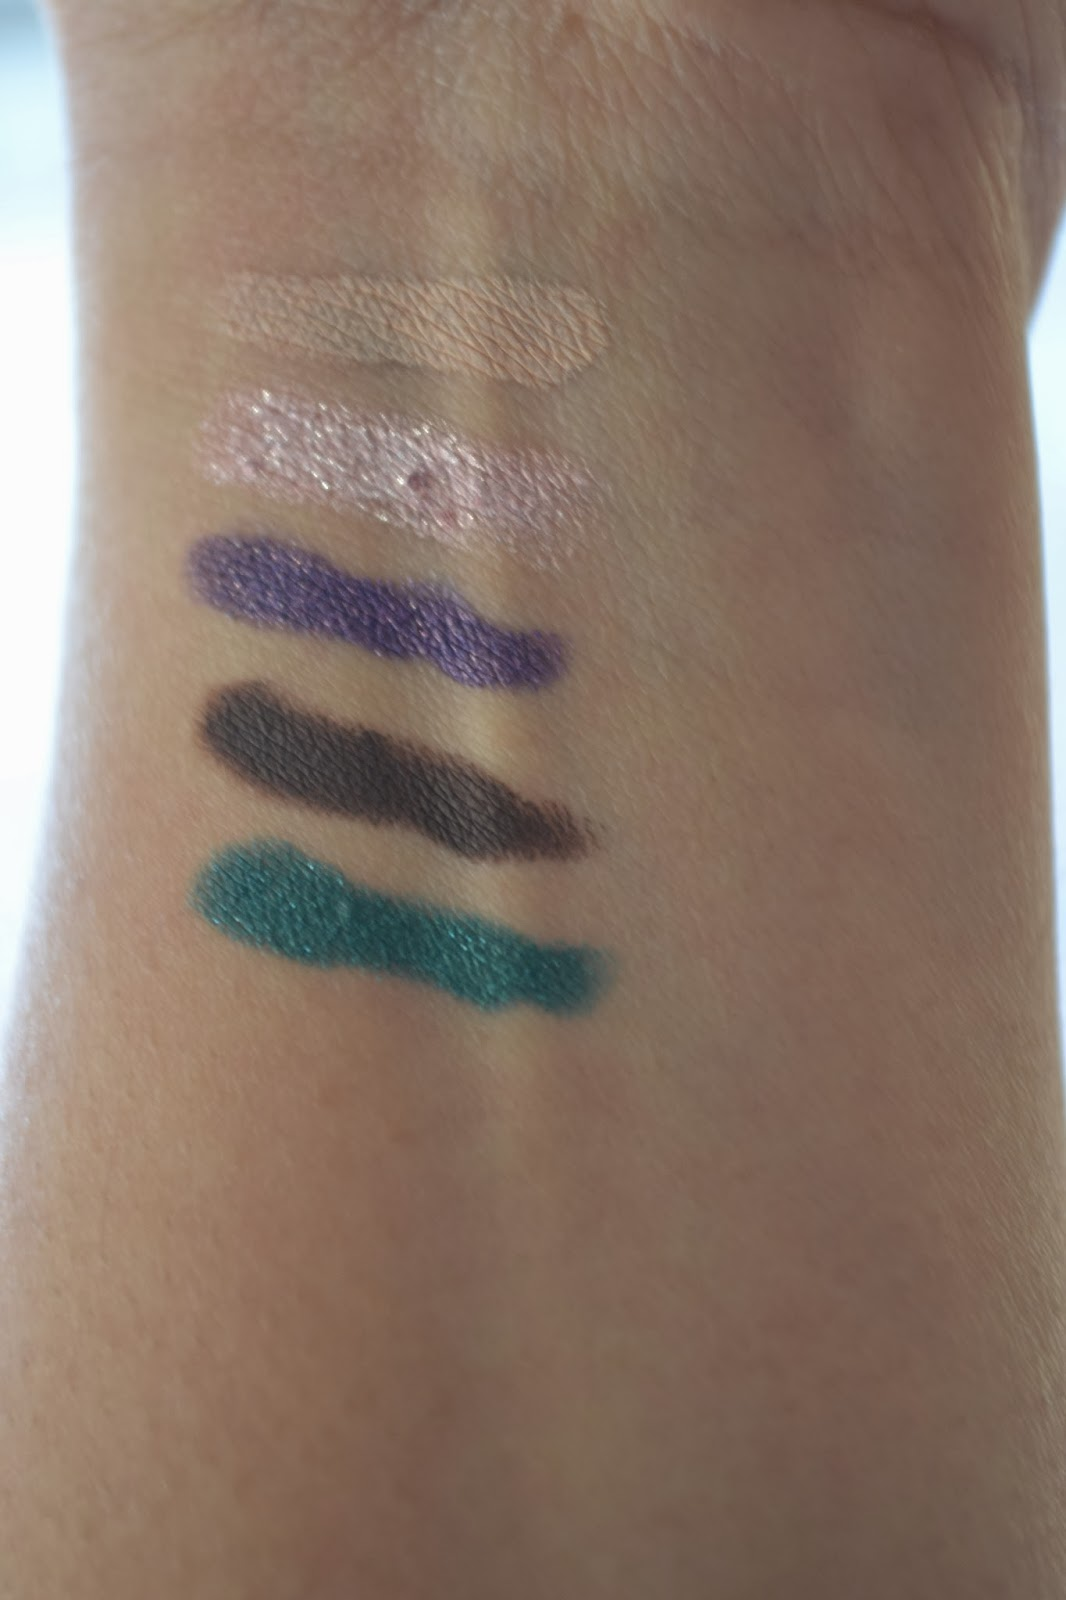 Jordana 12 Hr Made to Last Eyeshadow Pencil